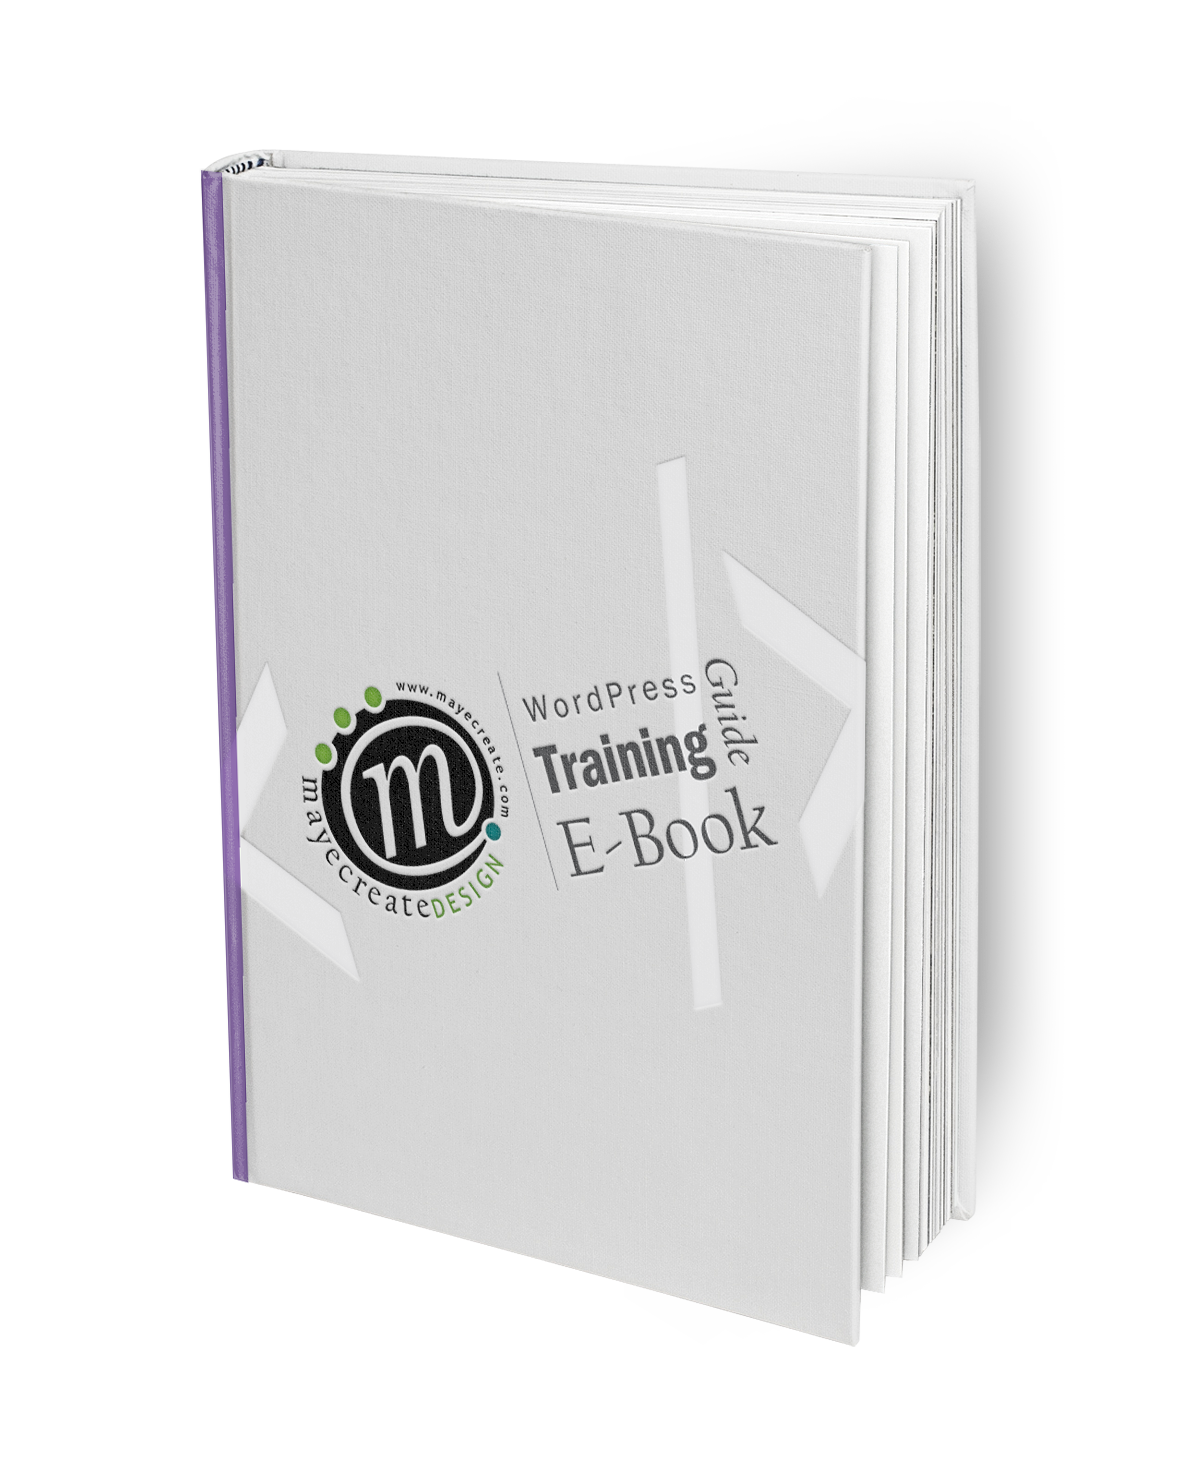 WordPress Training Guide E-Book